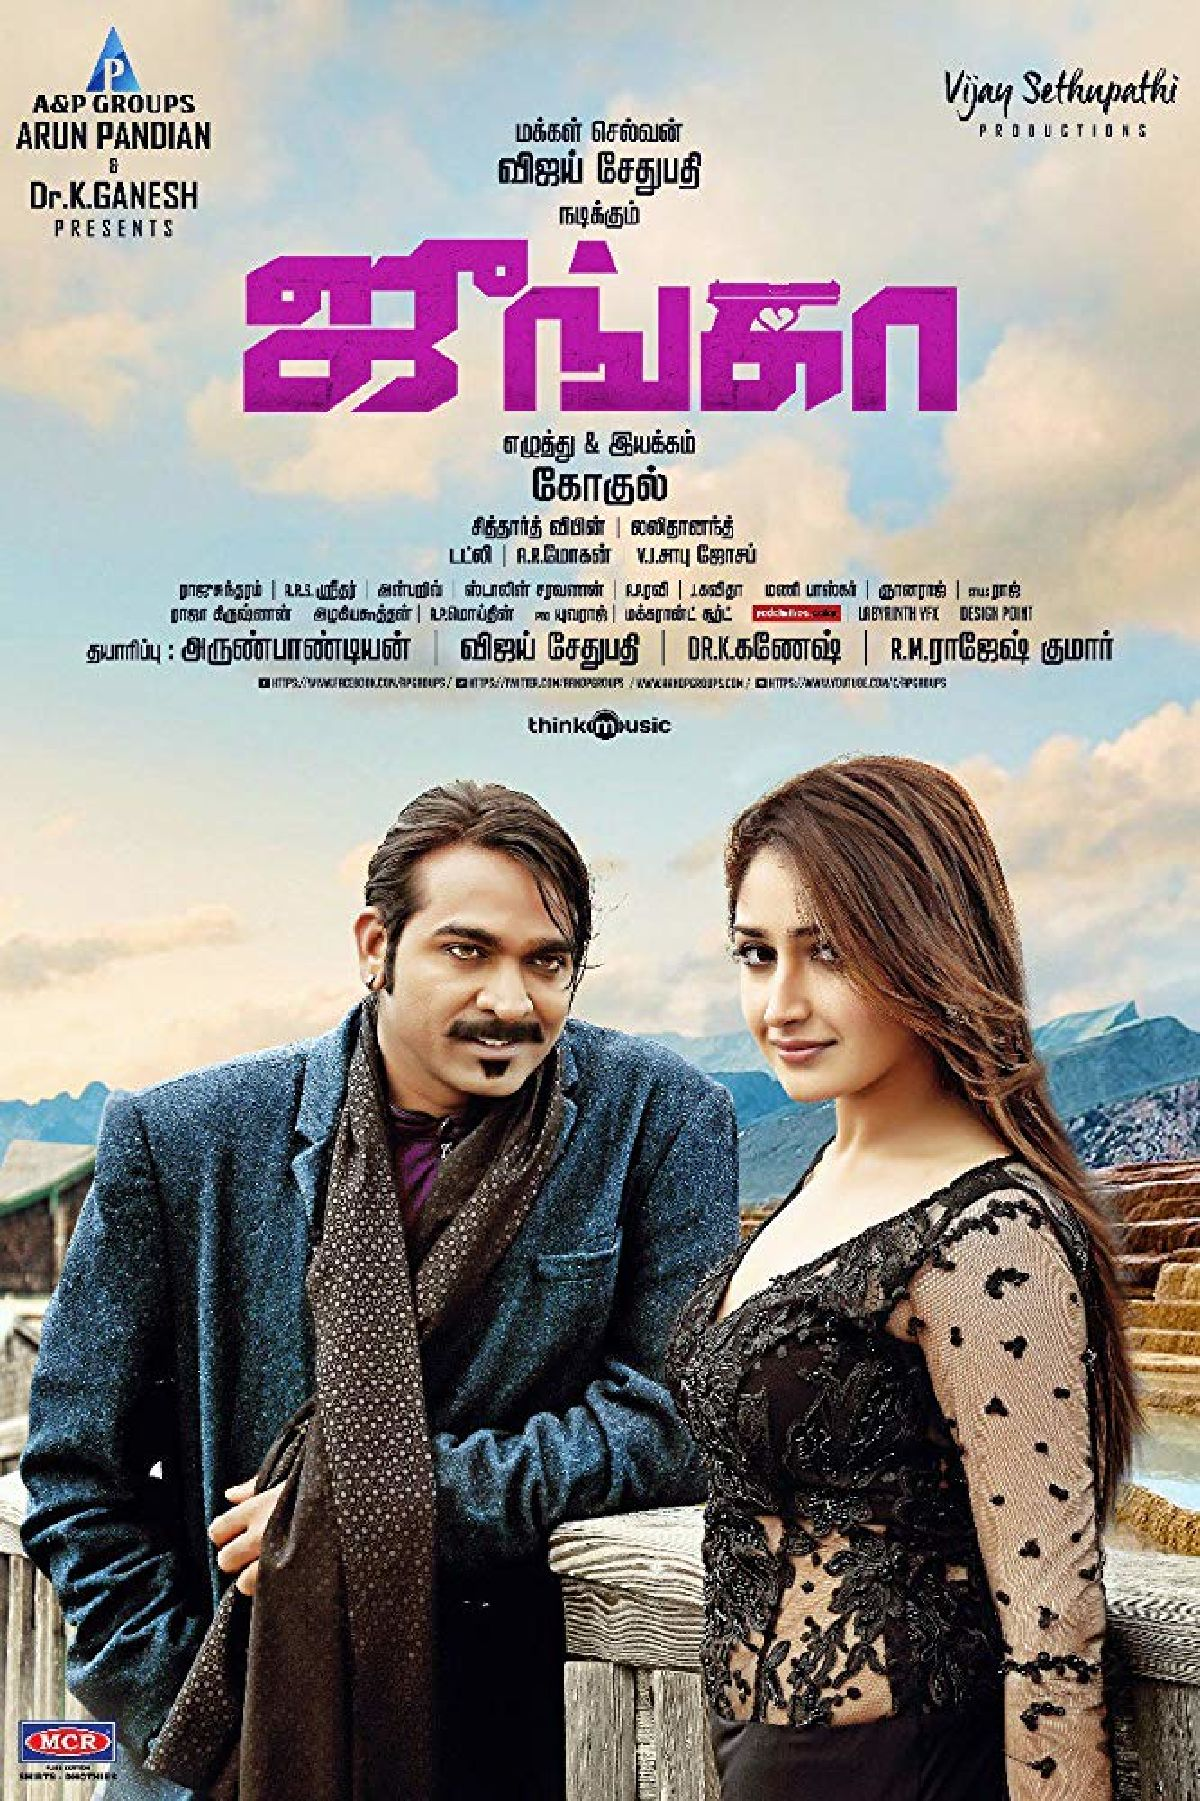 'Junga' movie poster